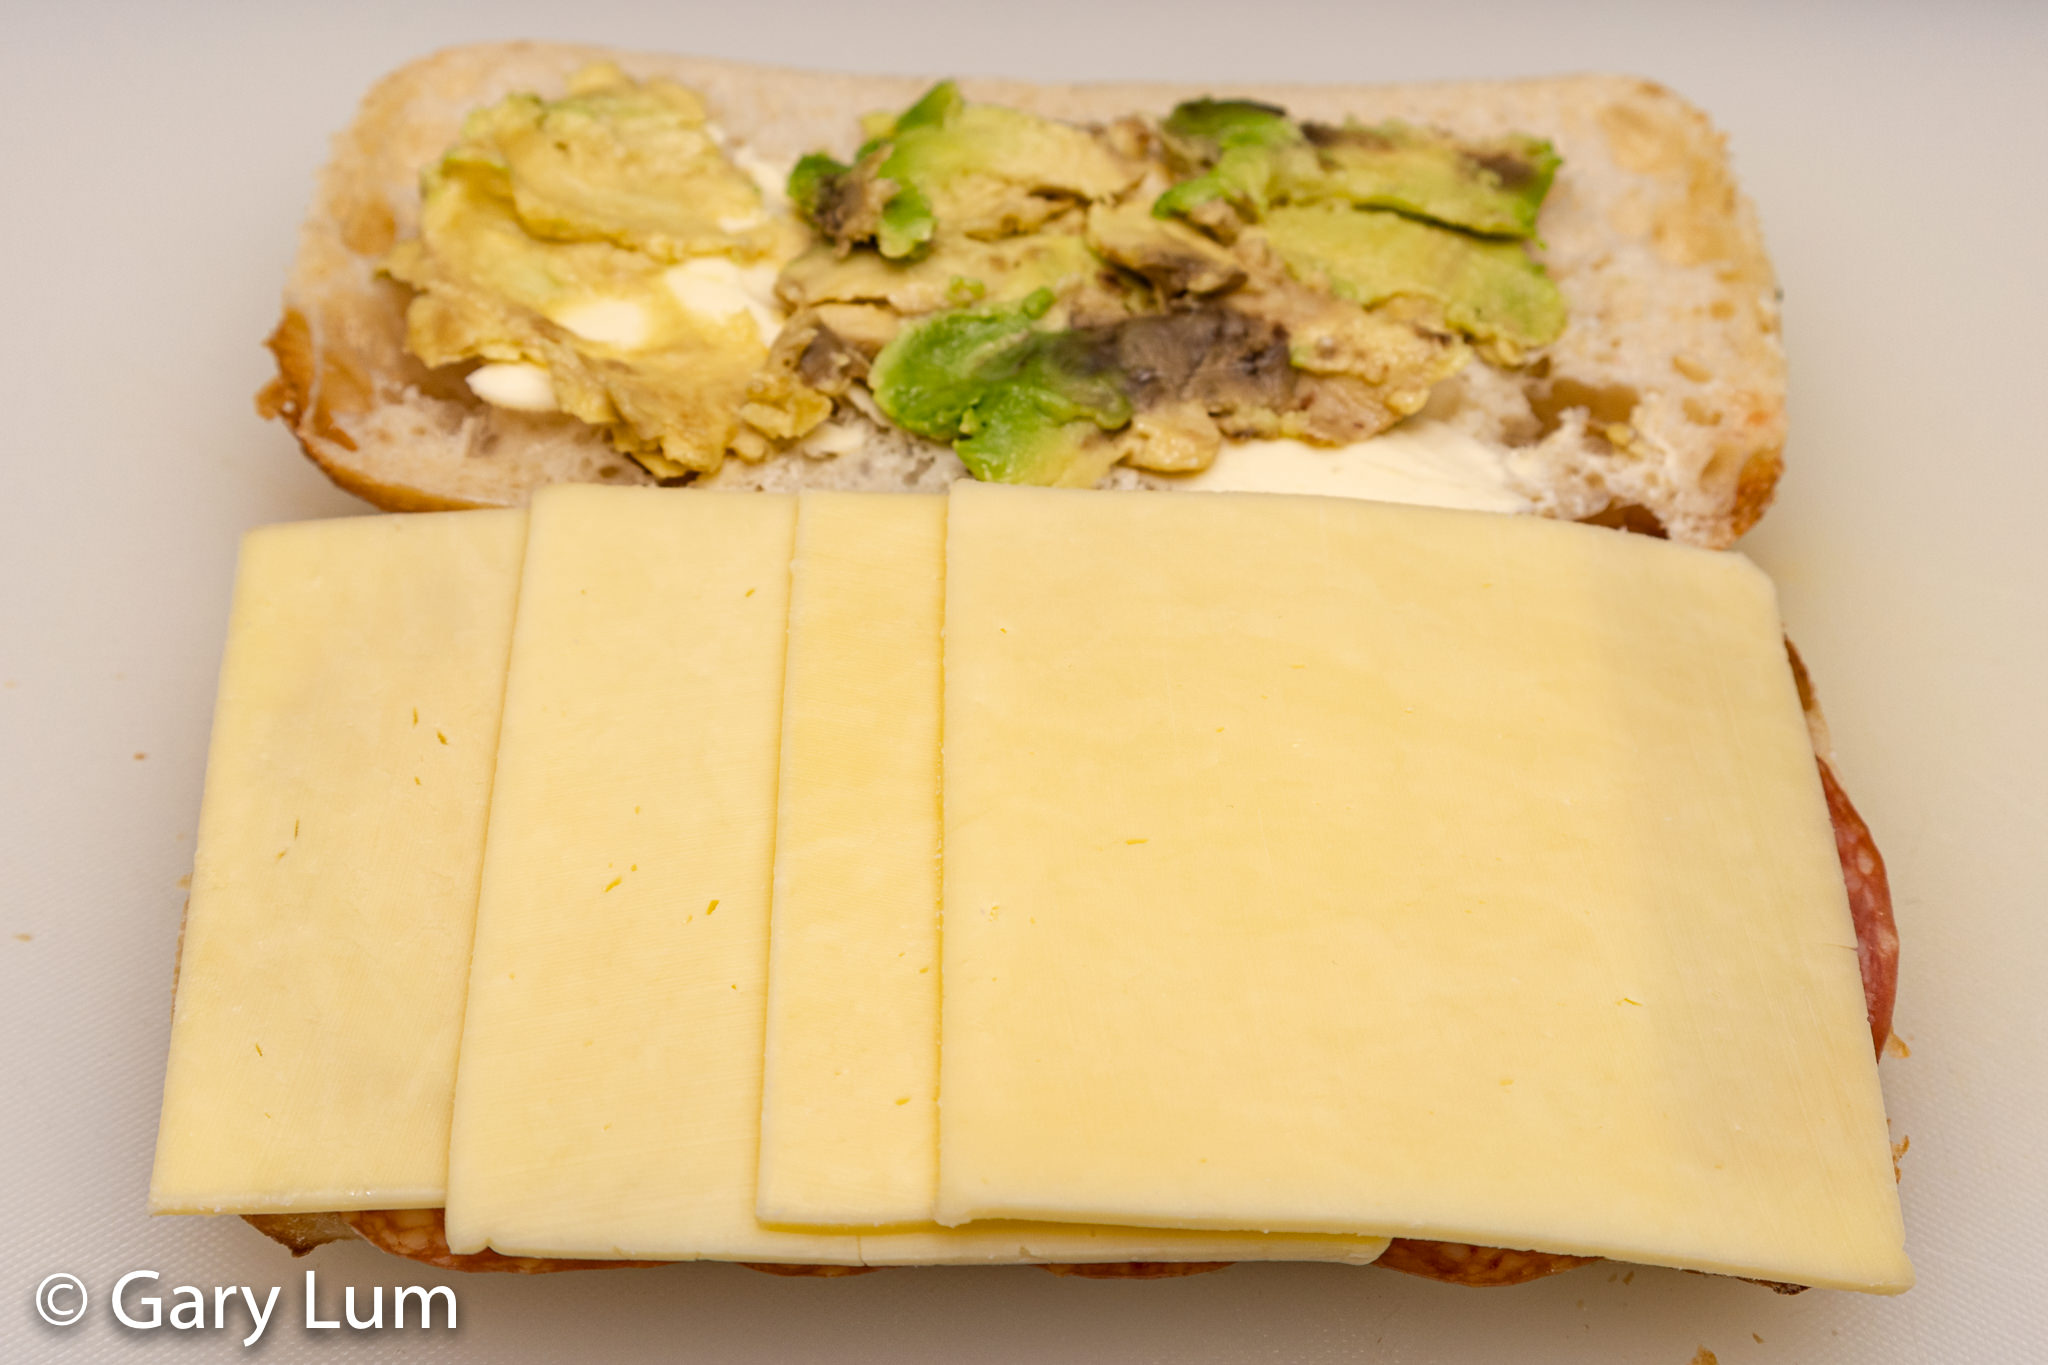 Turkish bread roll with Lurpak butter, jam, salami, Coon™ mozzarella and Colby cheeses and avocado.